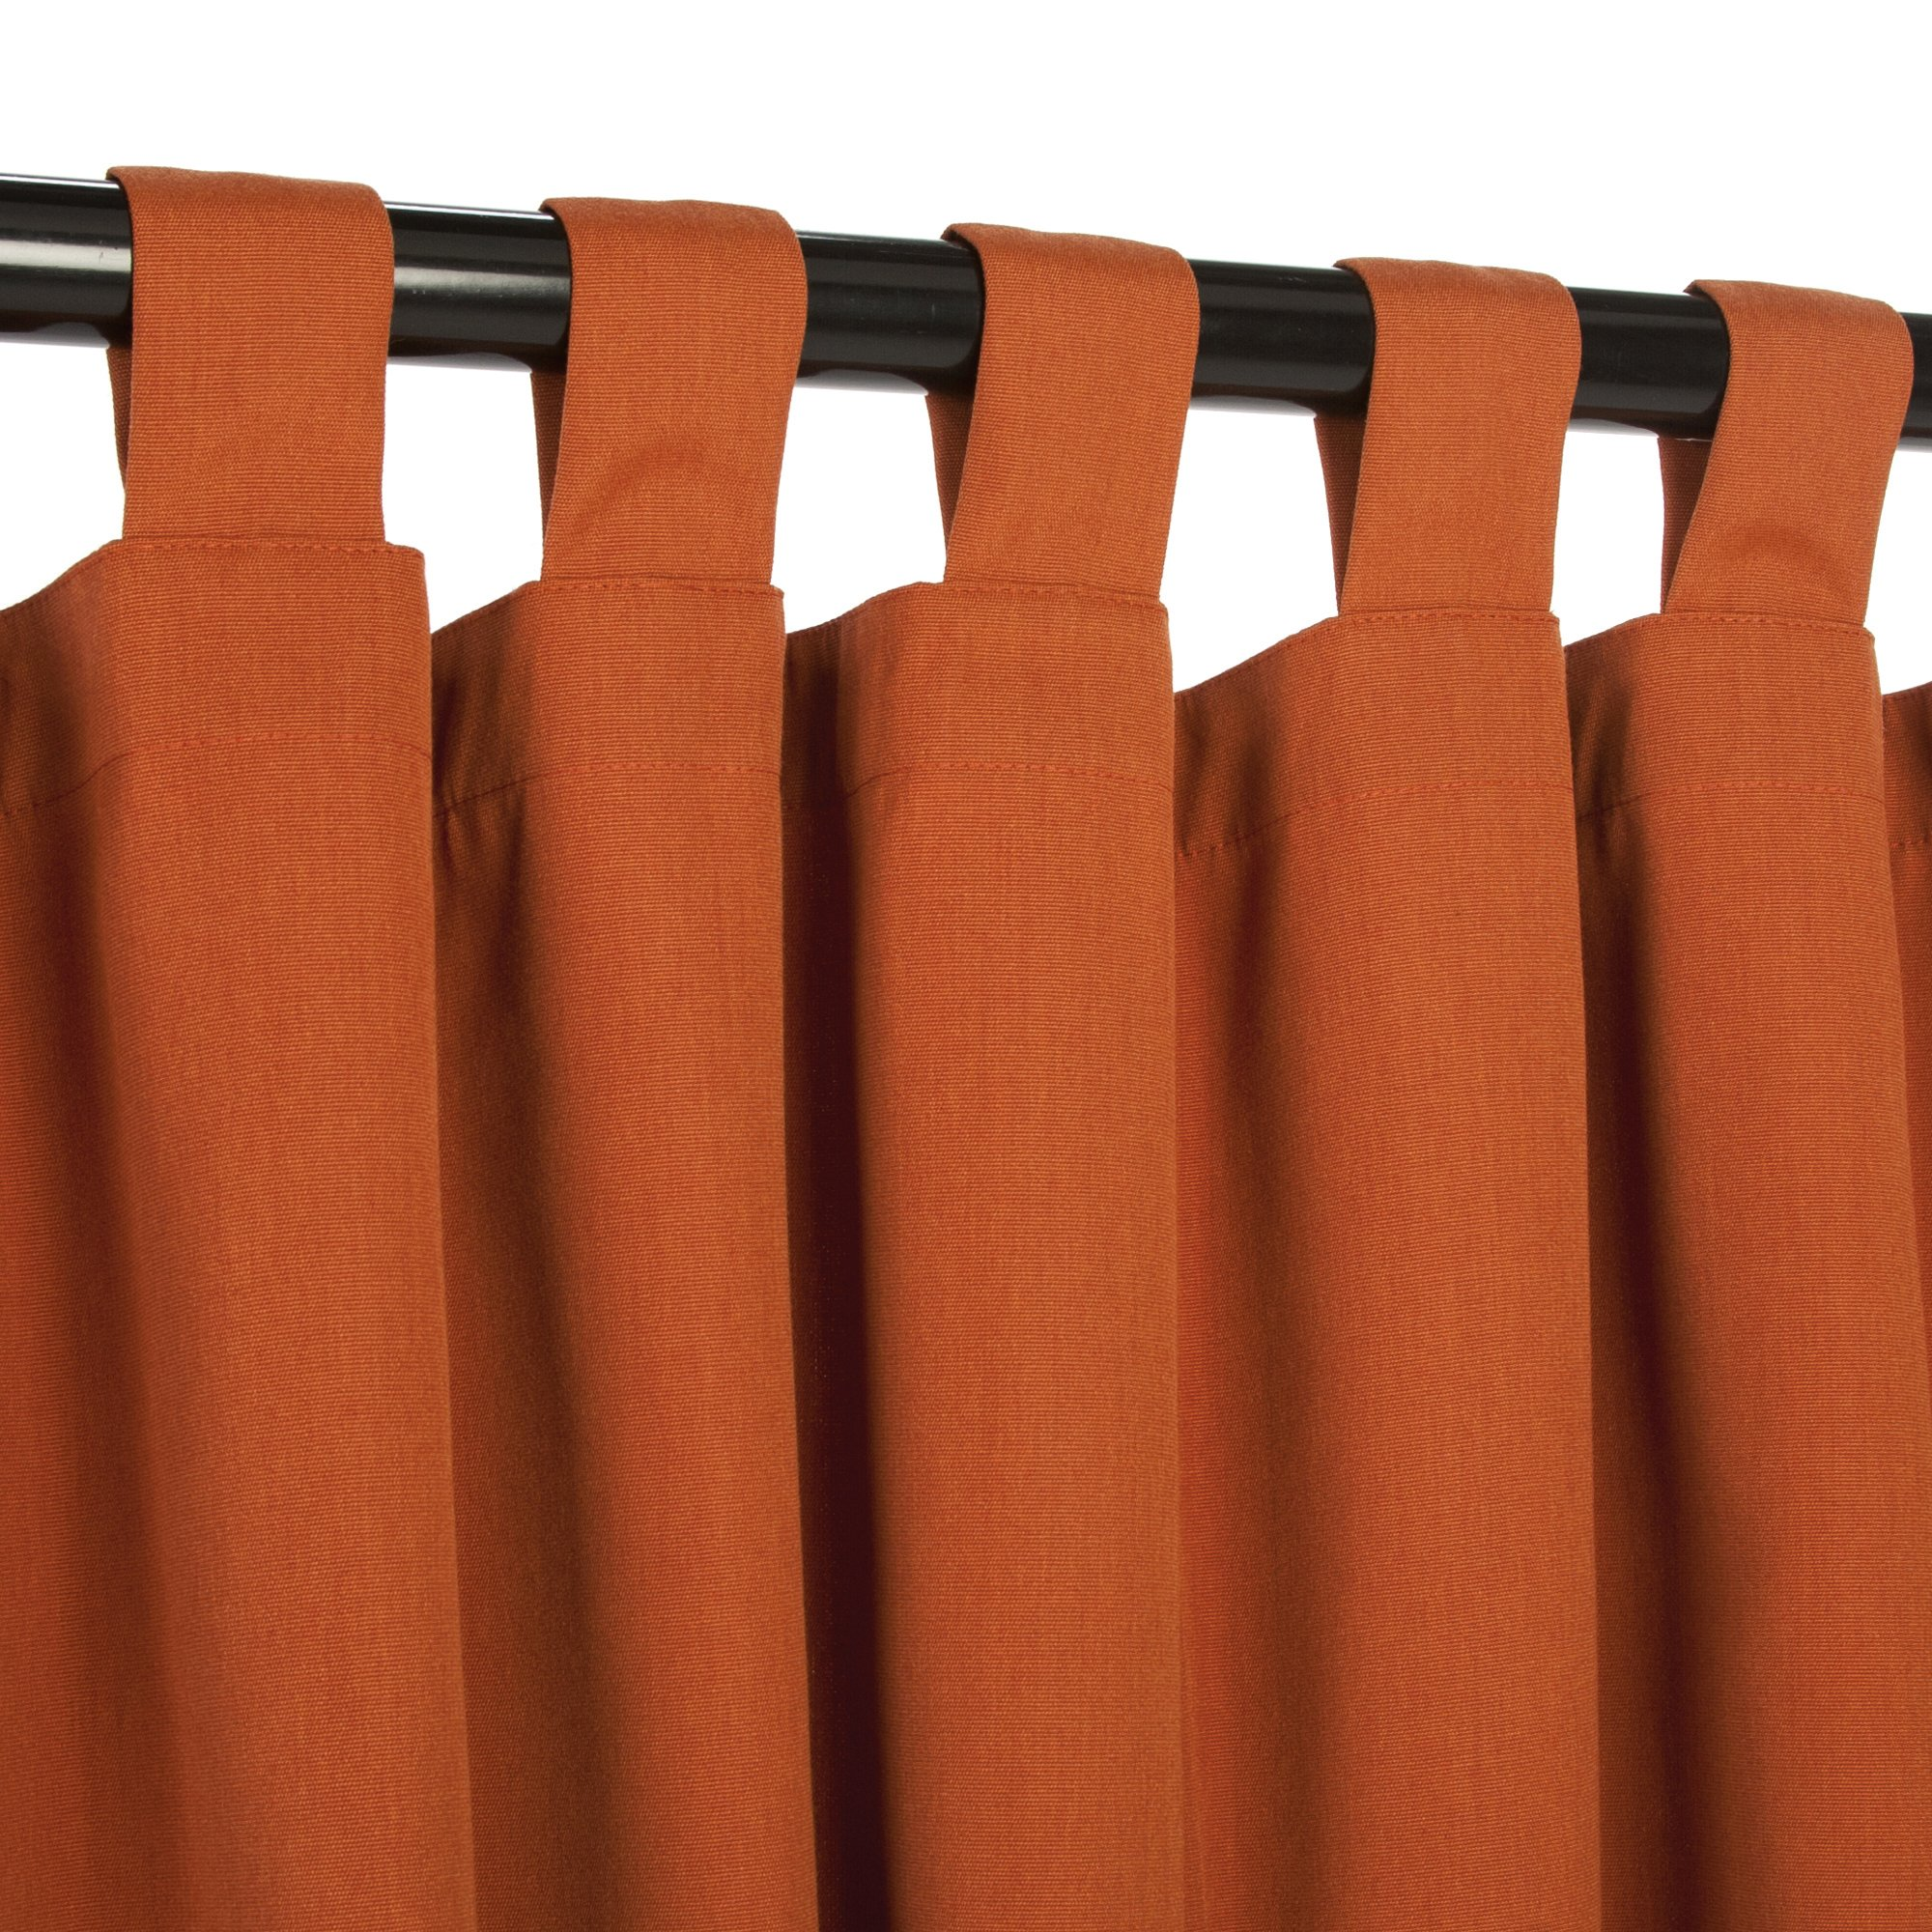 Sunbrella Outdoor Curtain Panel, Tab Top, 50 by 108 Inch, Rust and Sizes Includes Custom Storage Bag; Perfect for Your Patio, Porch, Gazebo, Pergola, and More